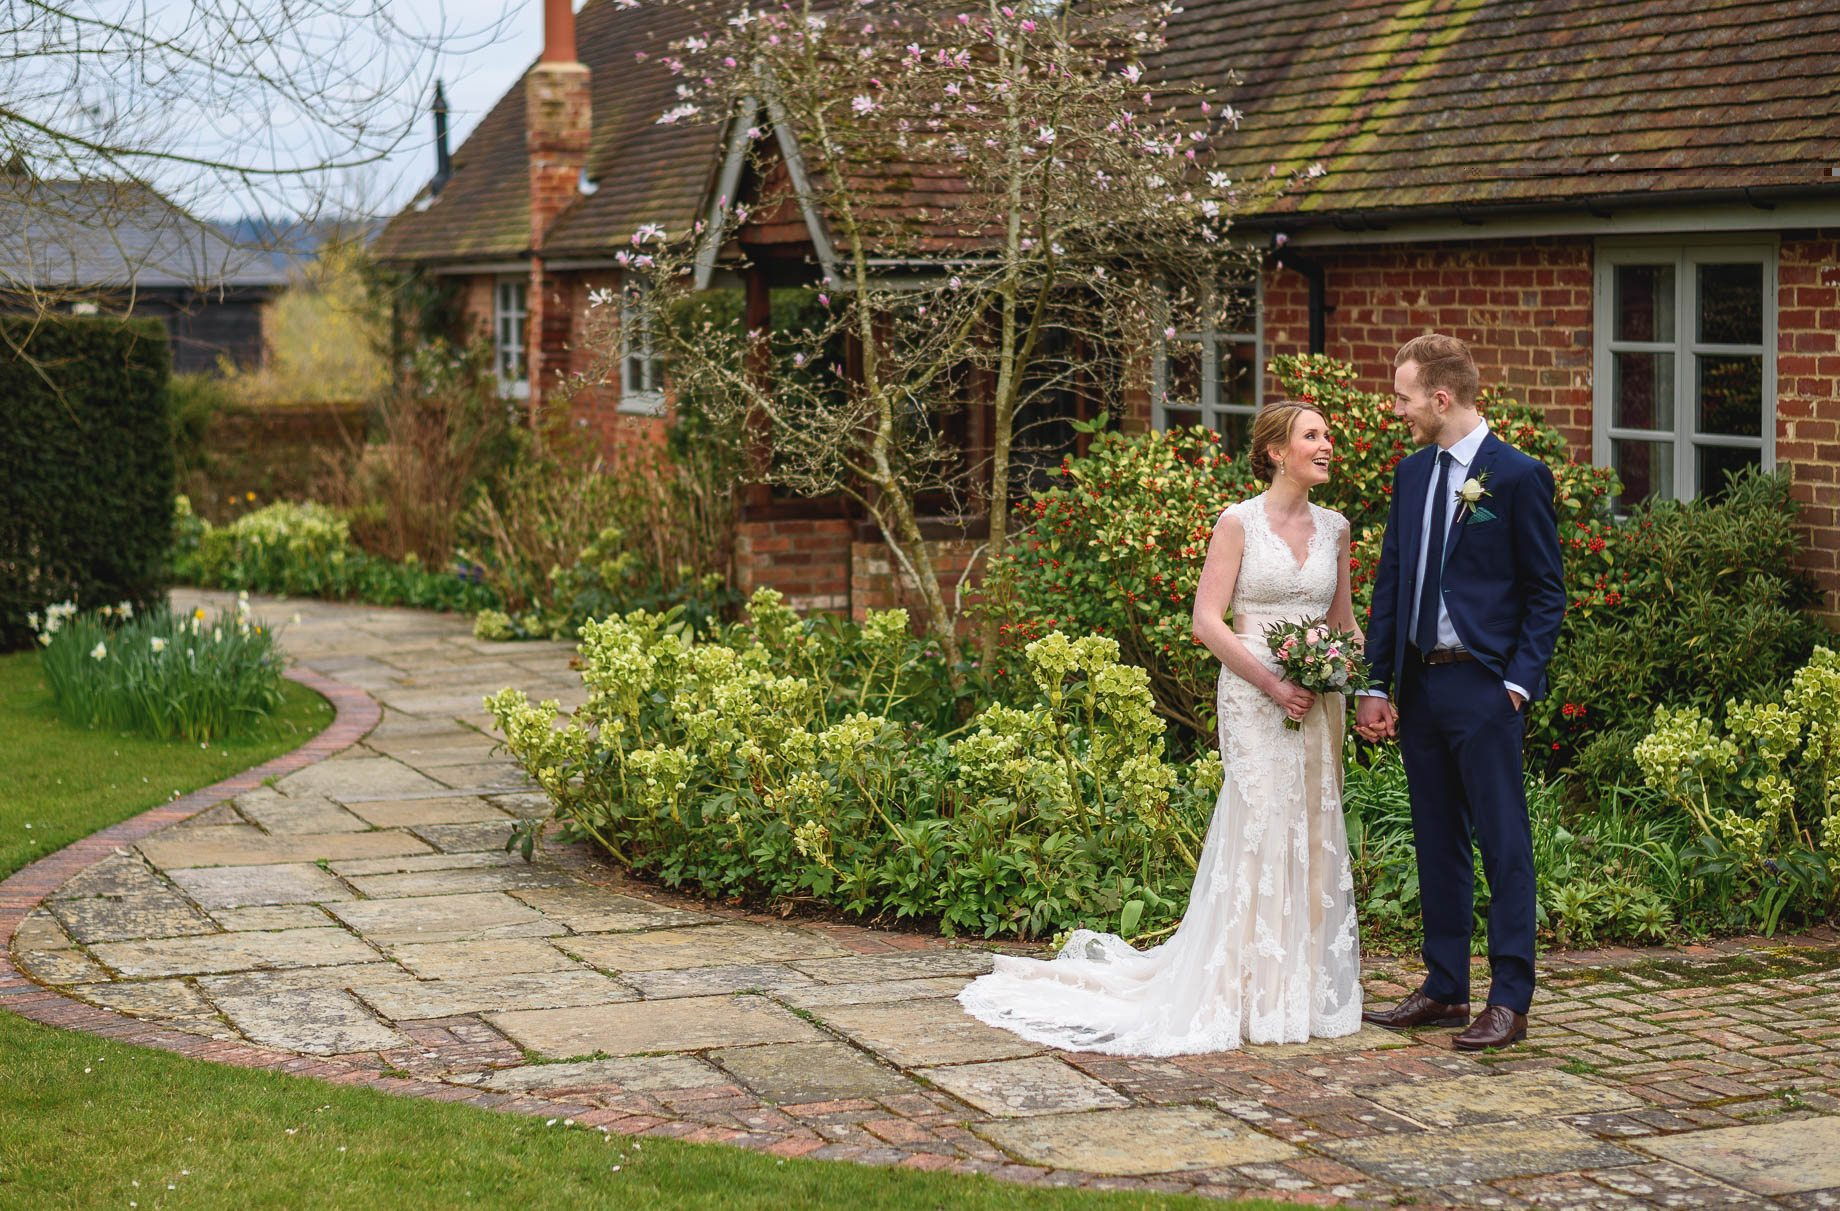 Surrey Wedding Photography by Guy Collier - Becca and James (66 of 145)